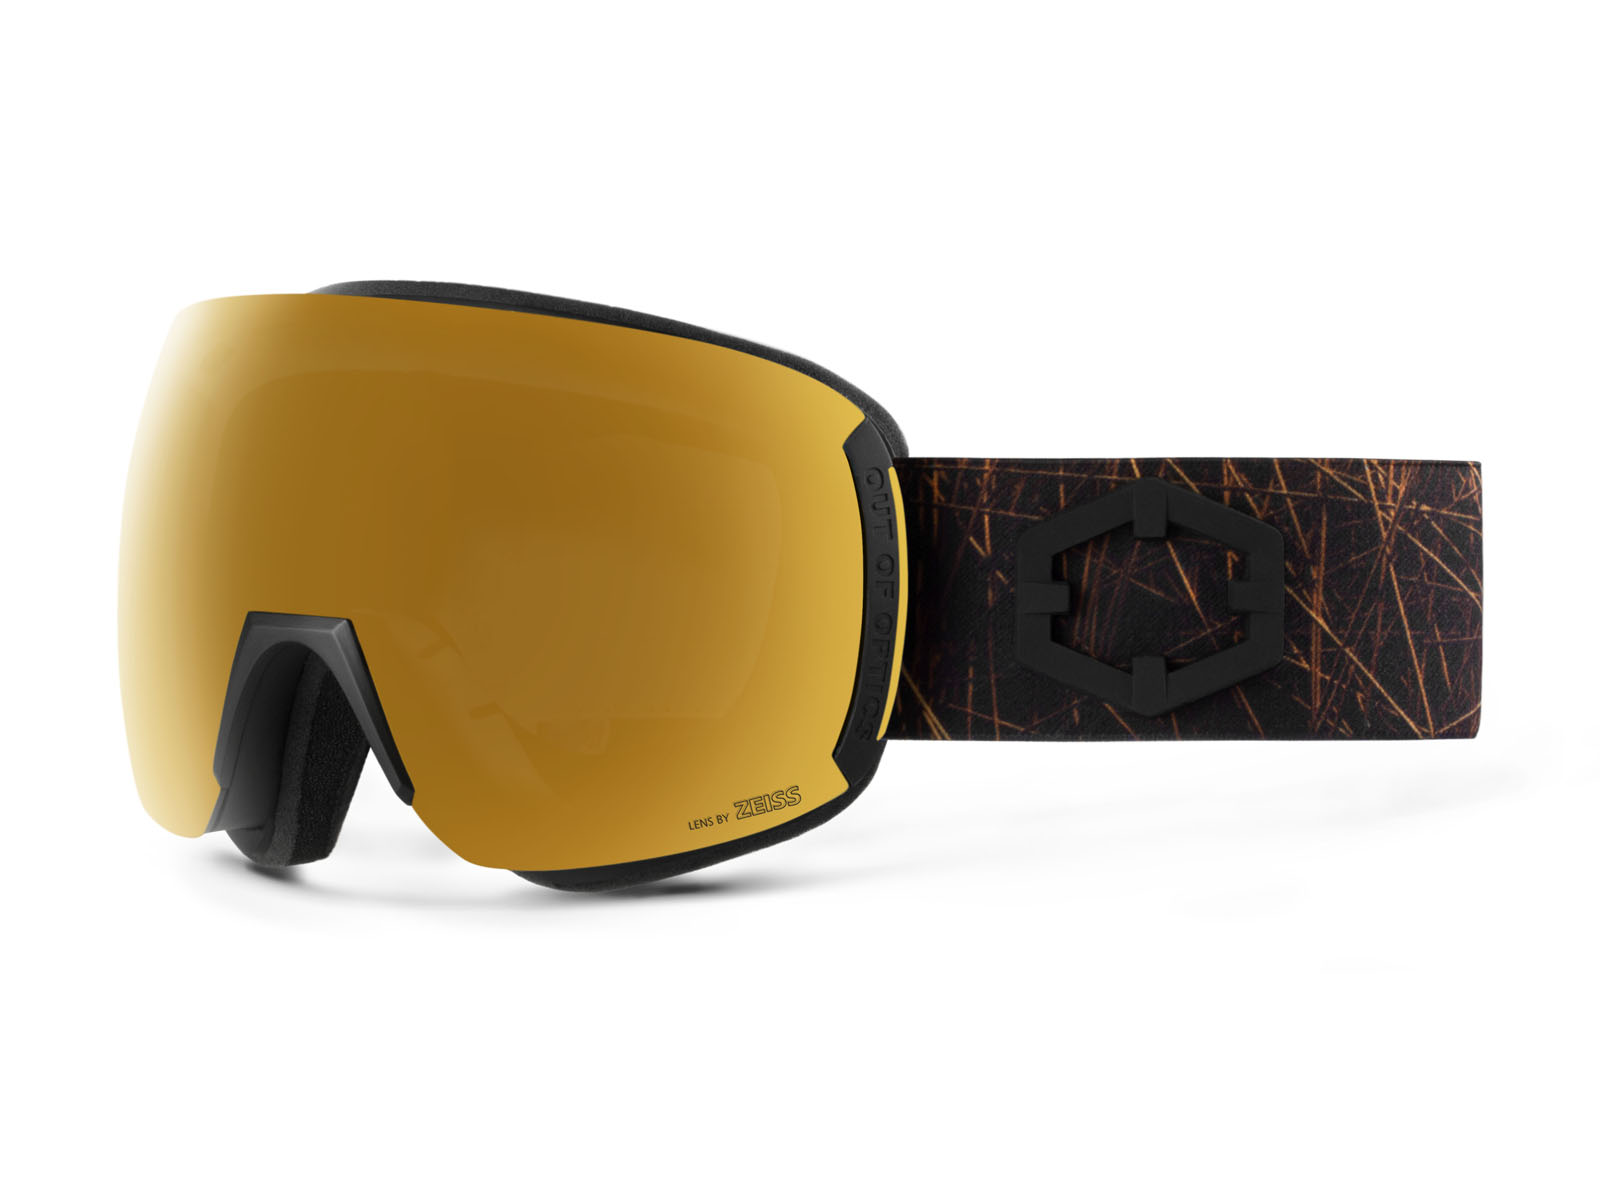 EARTH NEST GOLD24 MCI GOGGLE